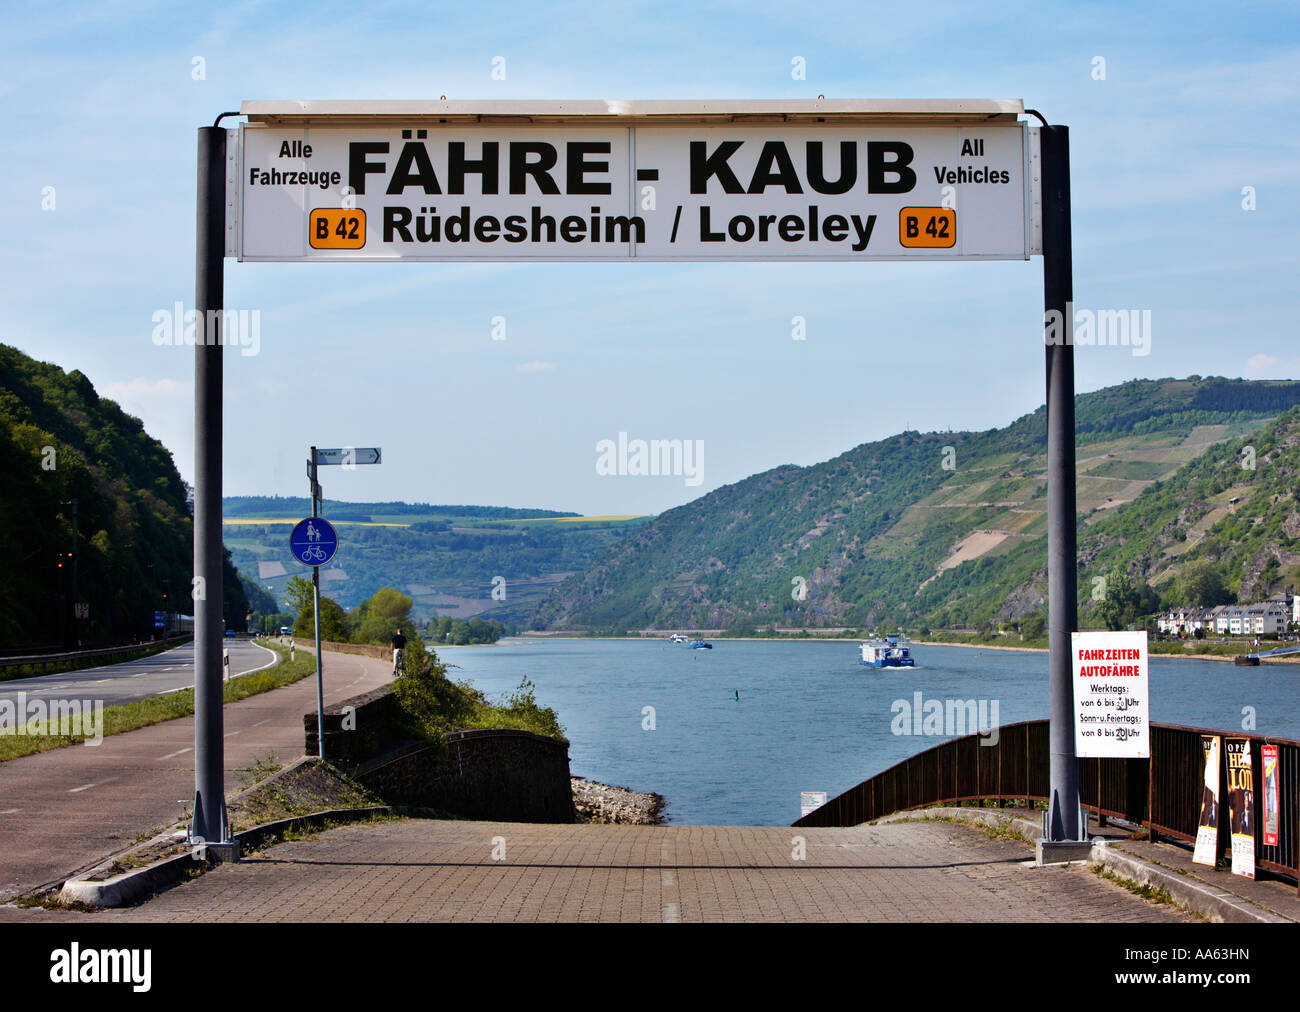 Rhine river car ferry sign and entrance at Kaub - Stock Image